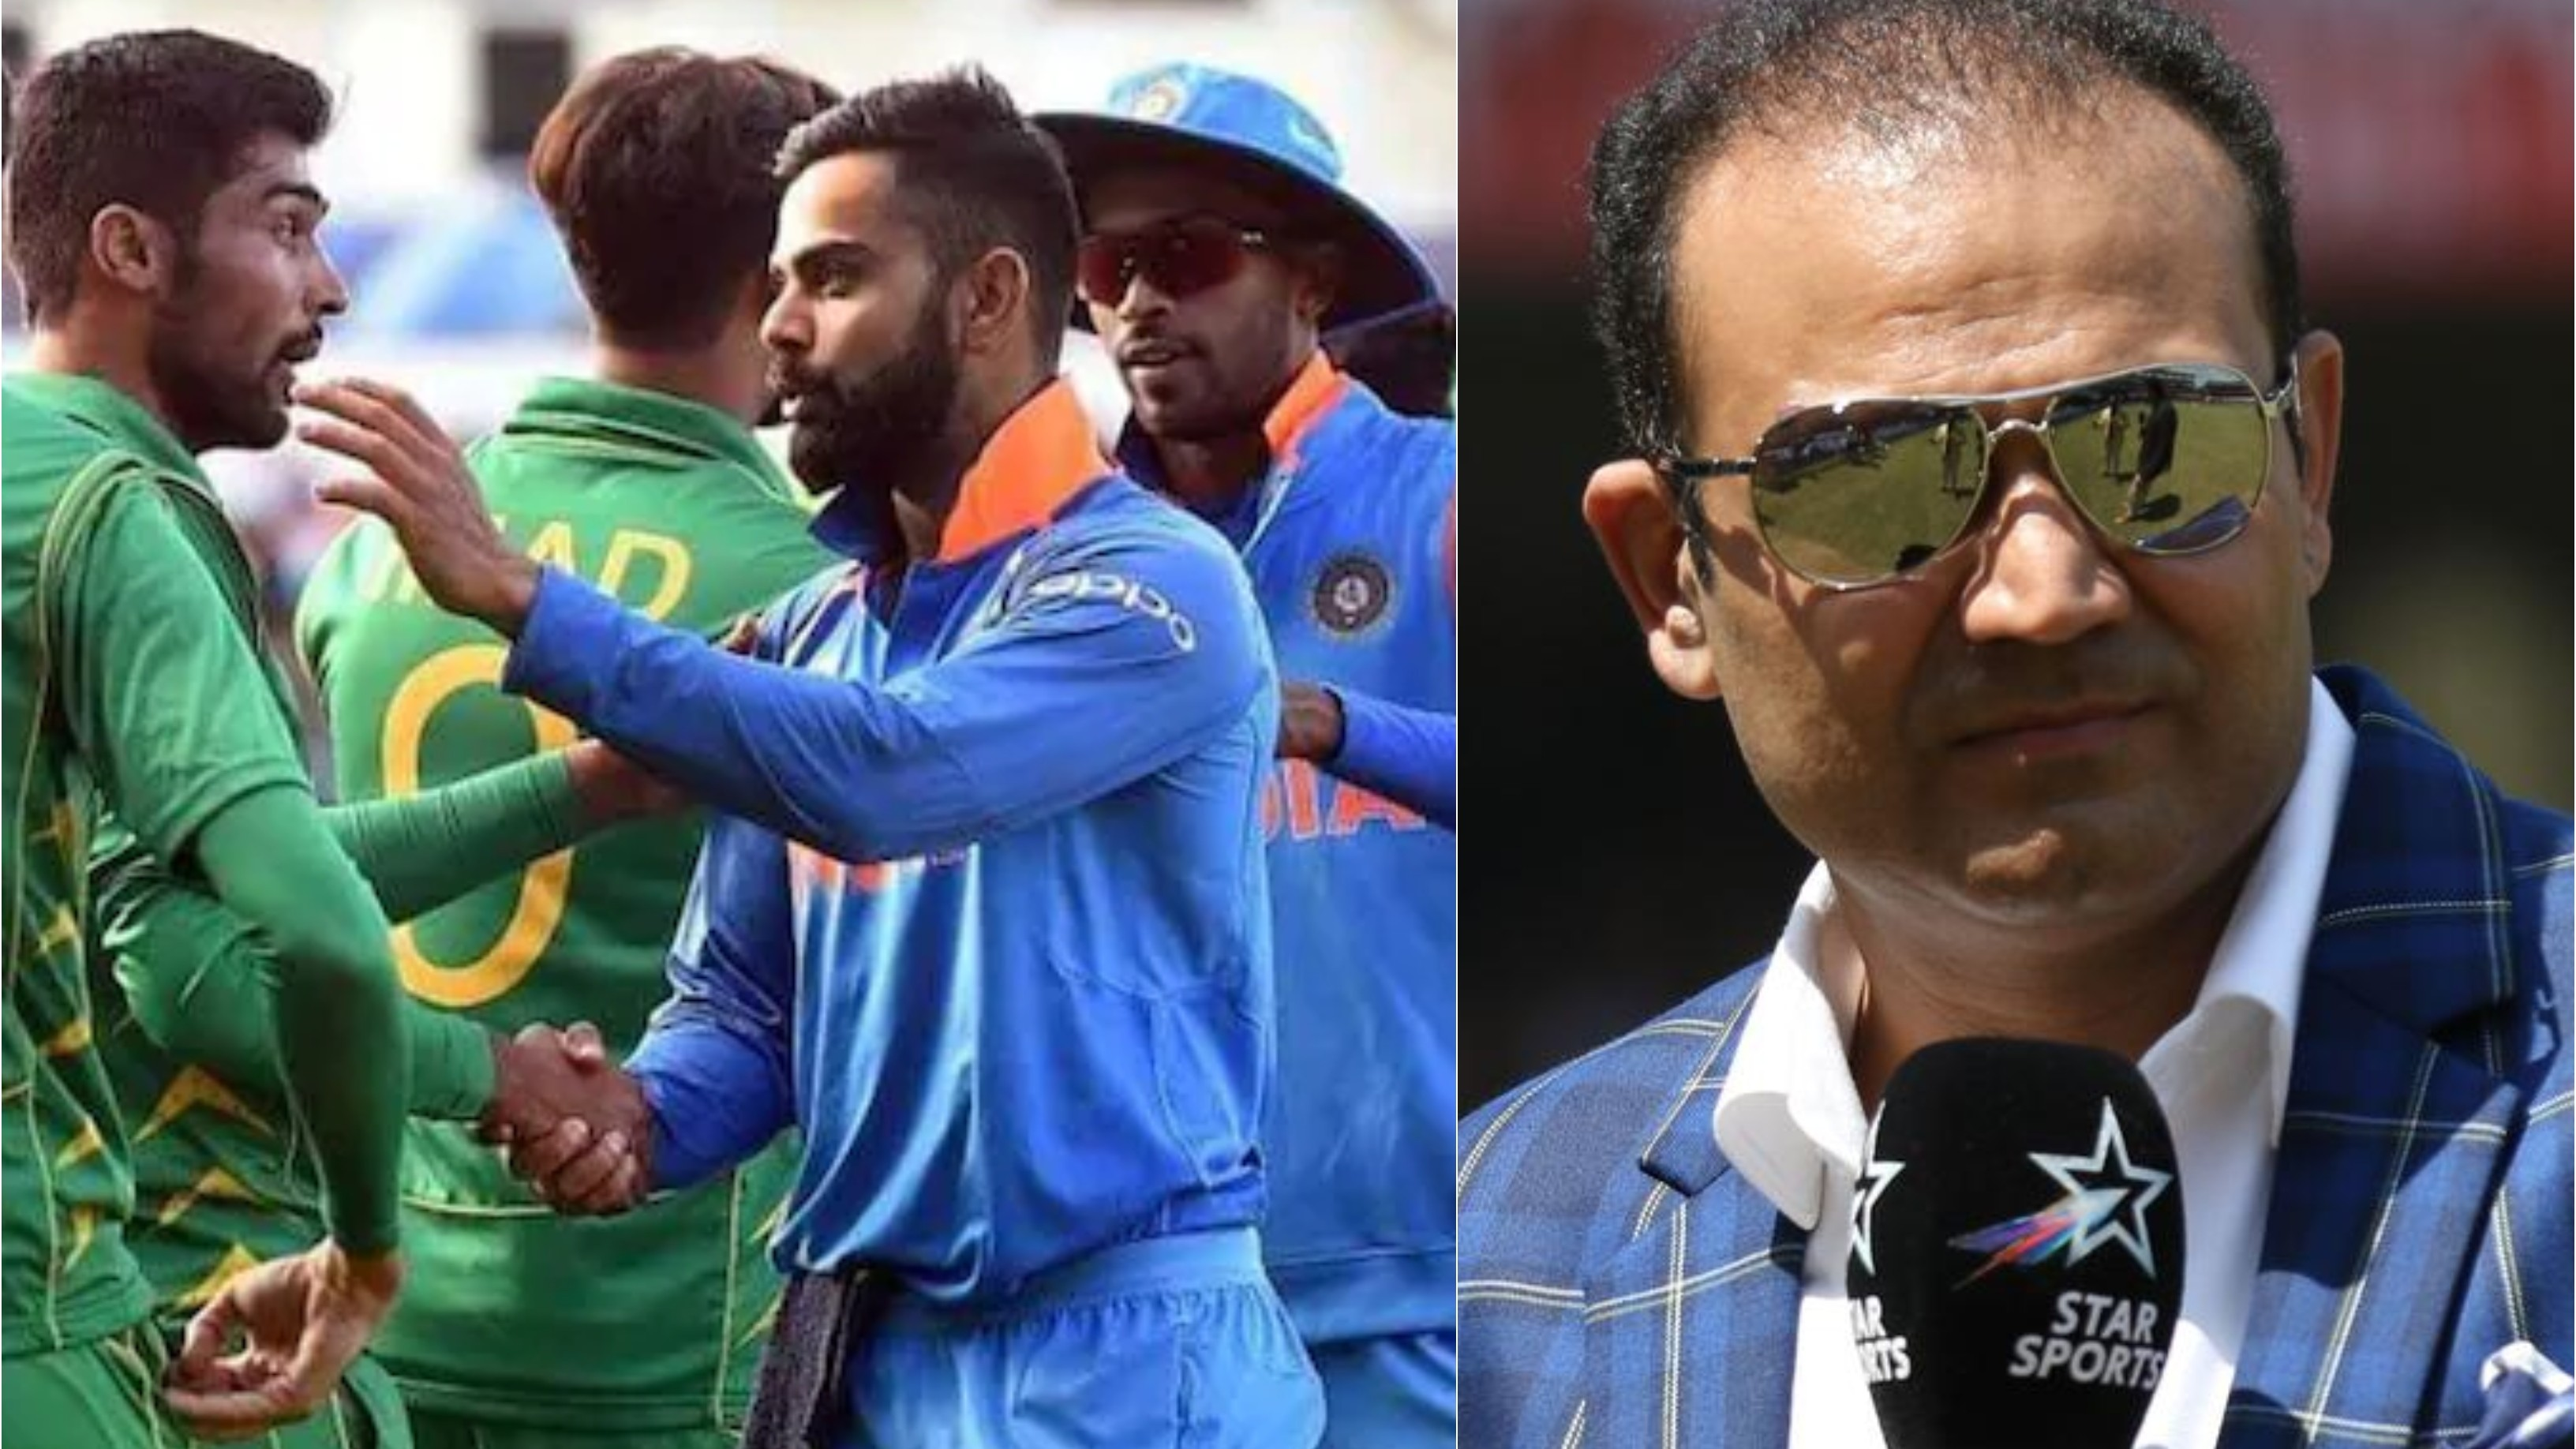 CWC 2019: India-Pakistan cricket matches nothing less than war, says Virender Sehwag